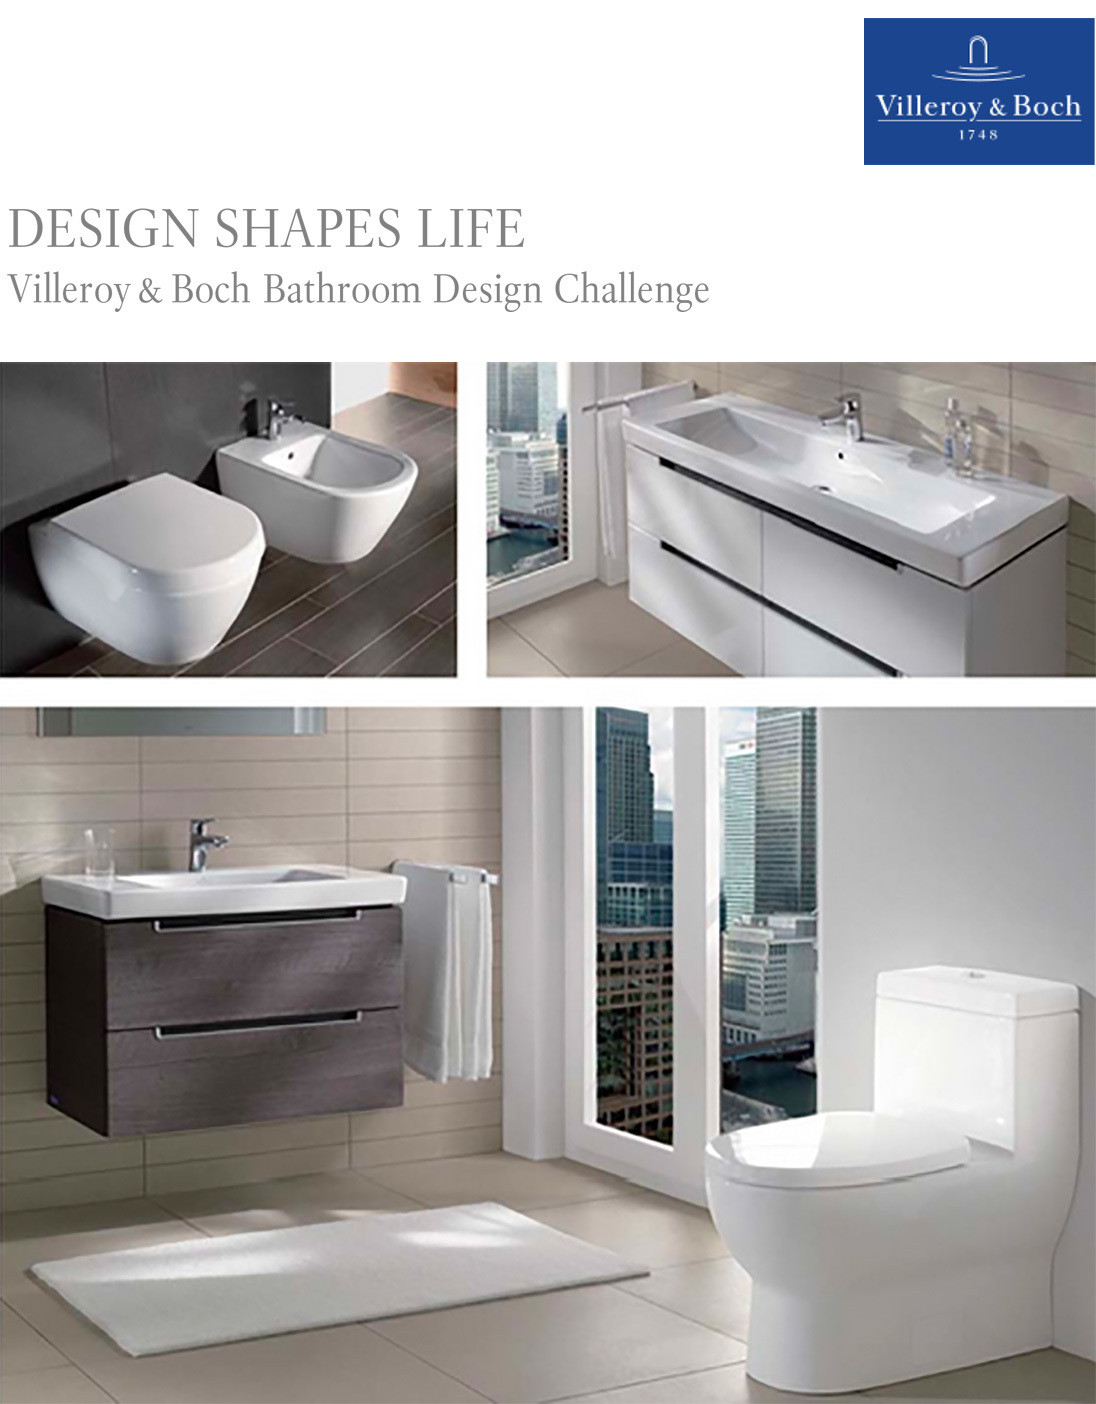 design shapes life villeroy boch launches bathroom design challenge - Bathroom Designs Villeroy And Boch